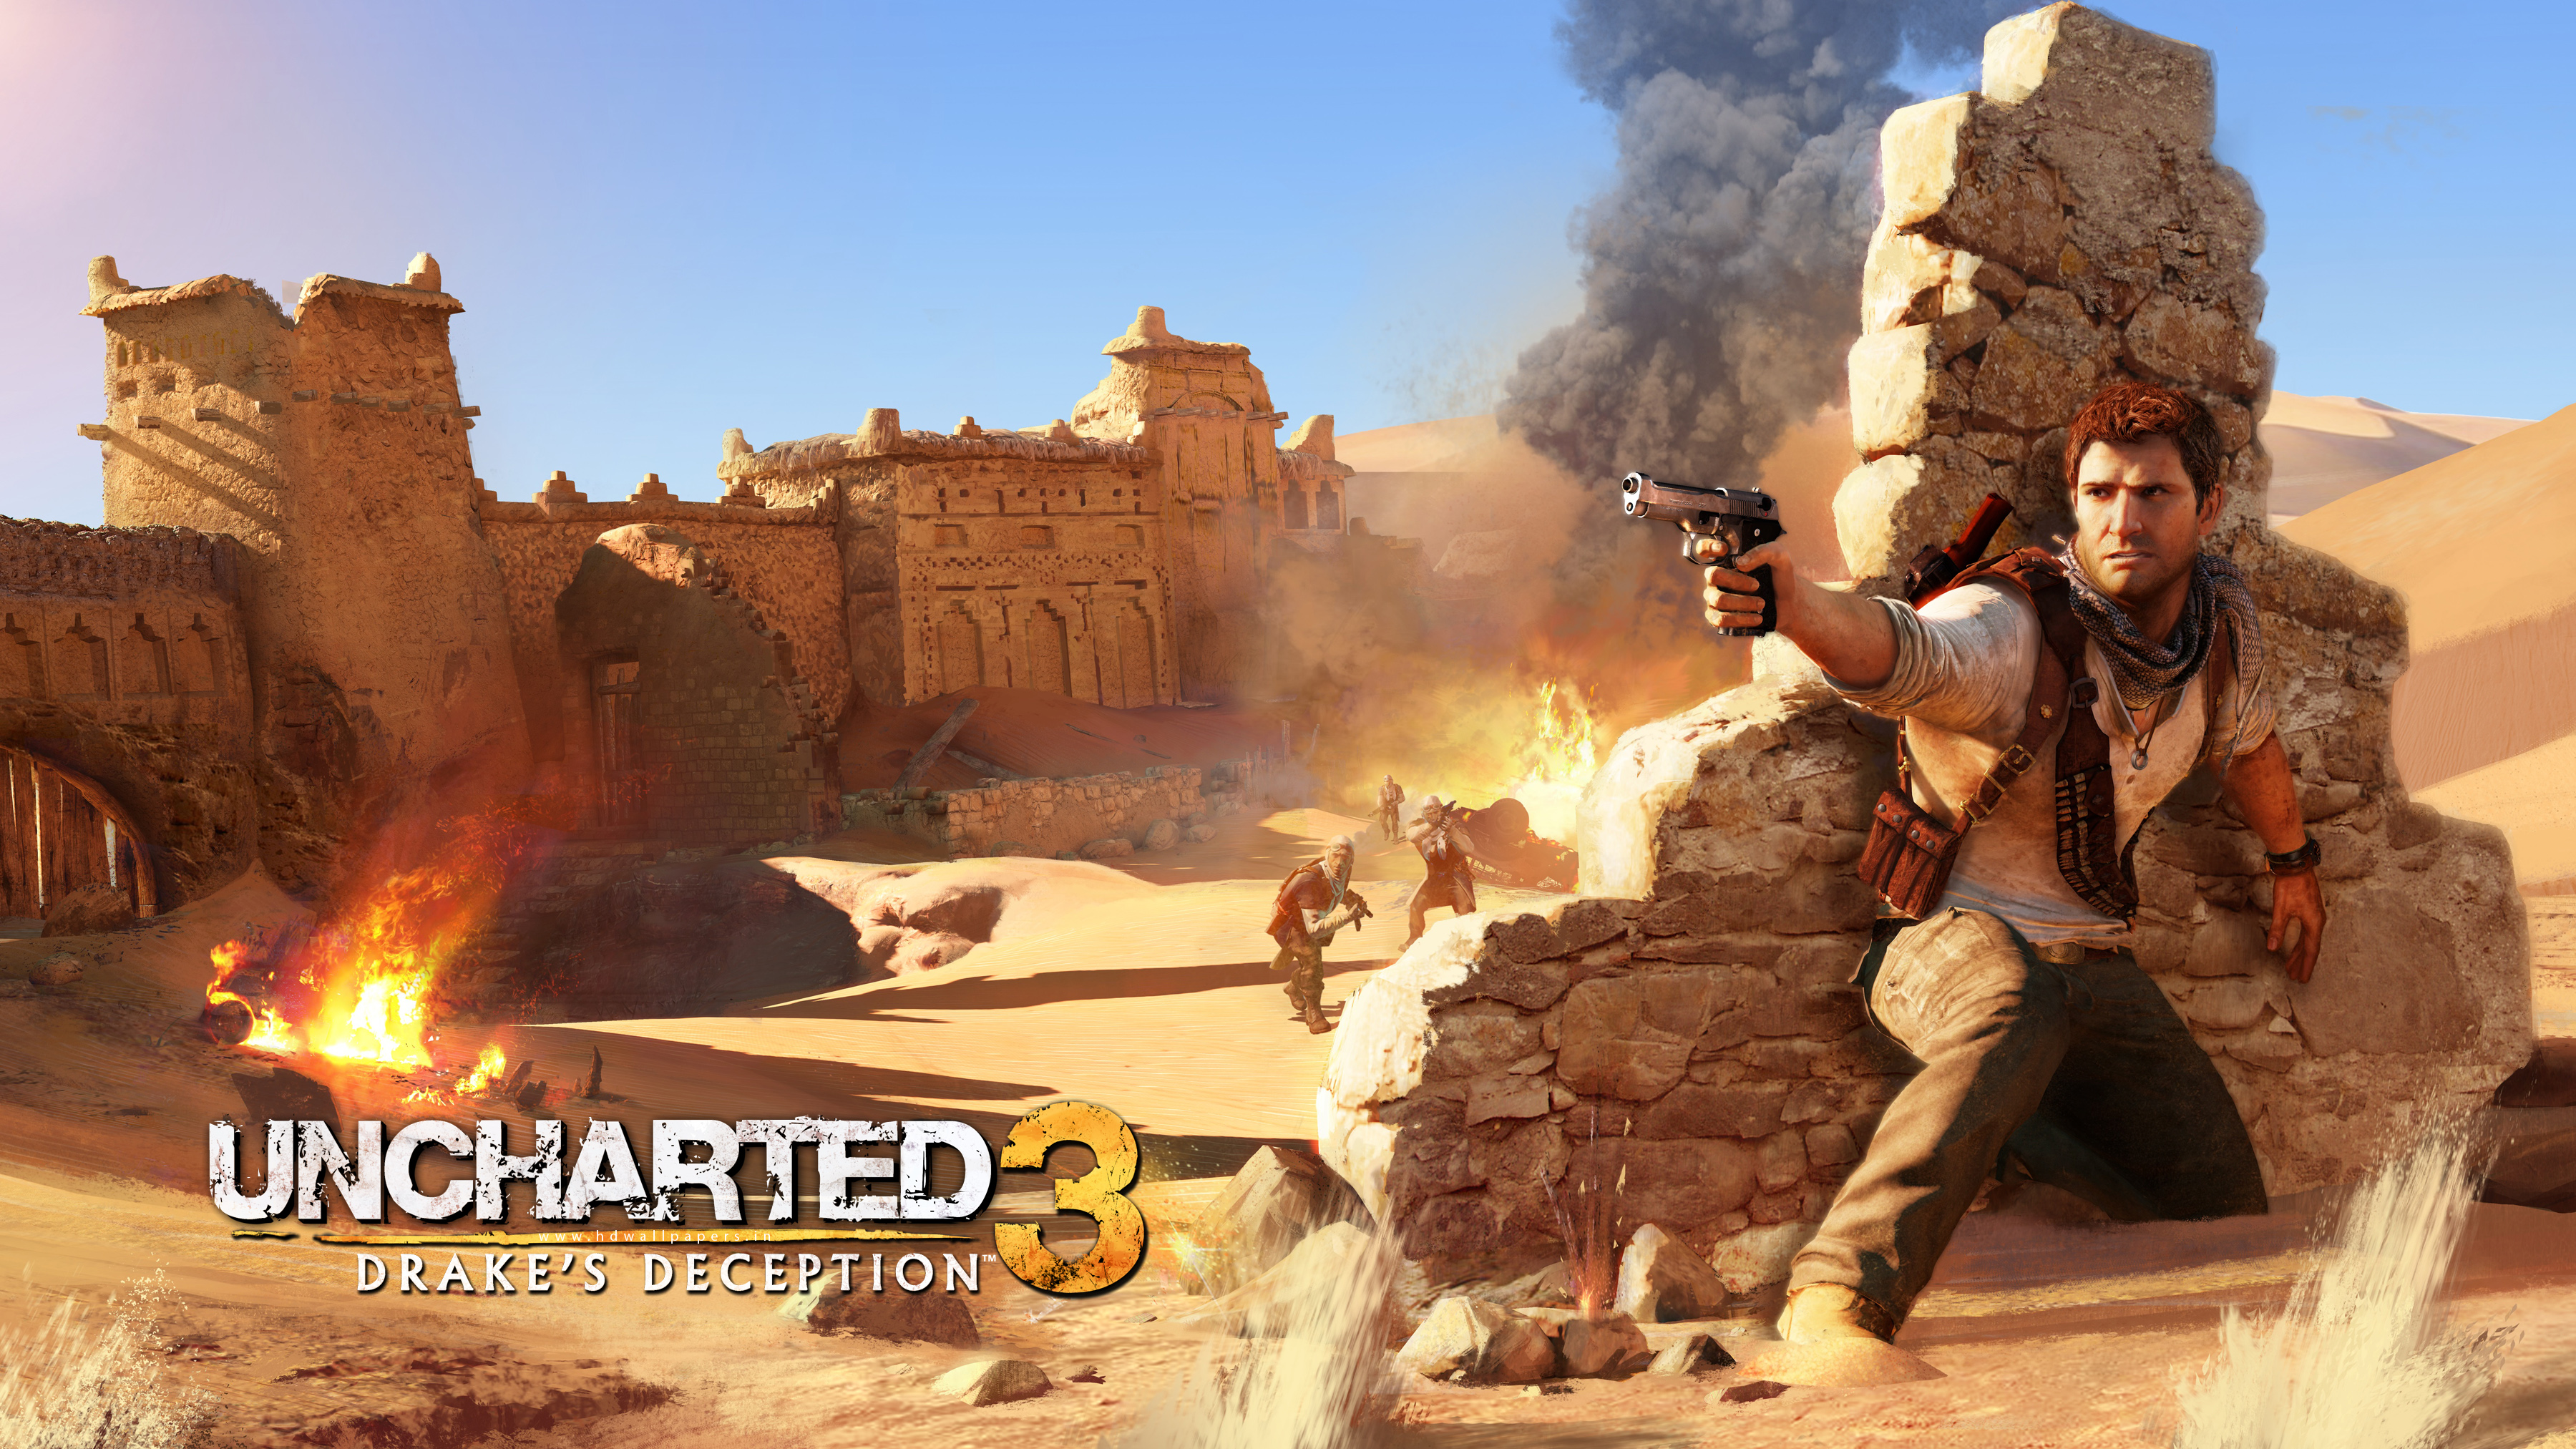 Uncharted wallpapers photos and desktop backgrounds up to - Uncharted wallpaper ...